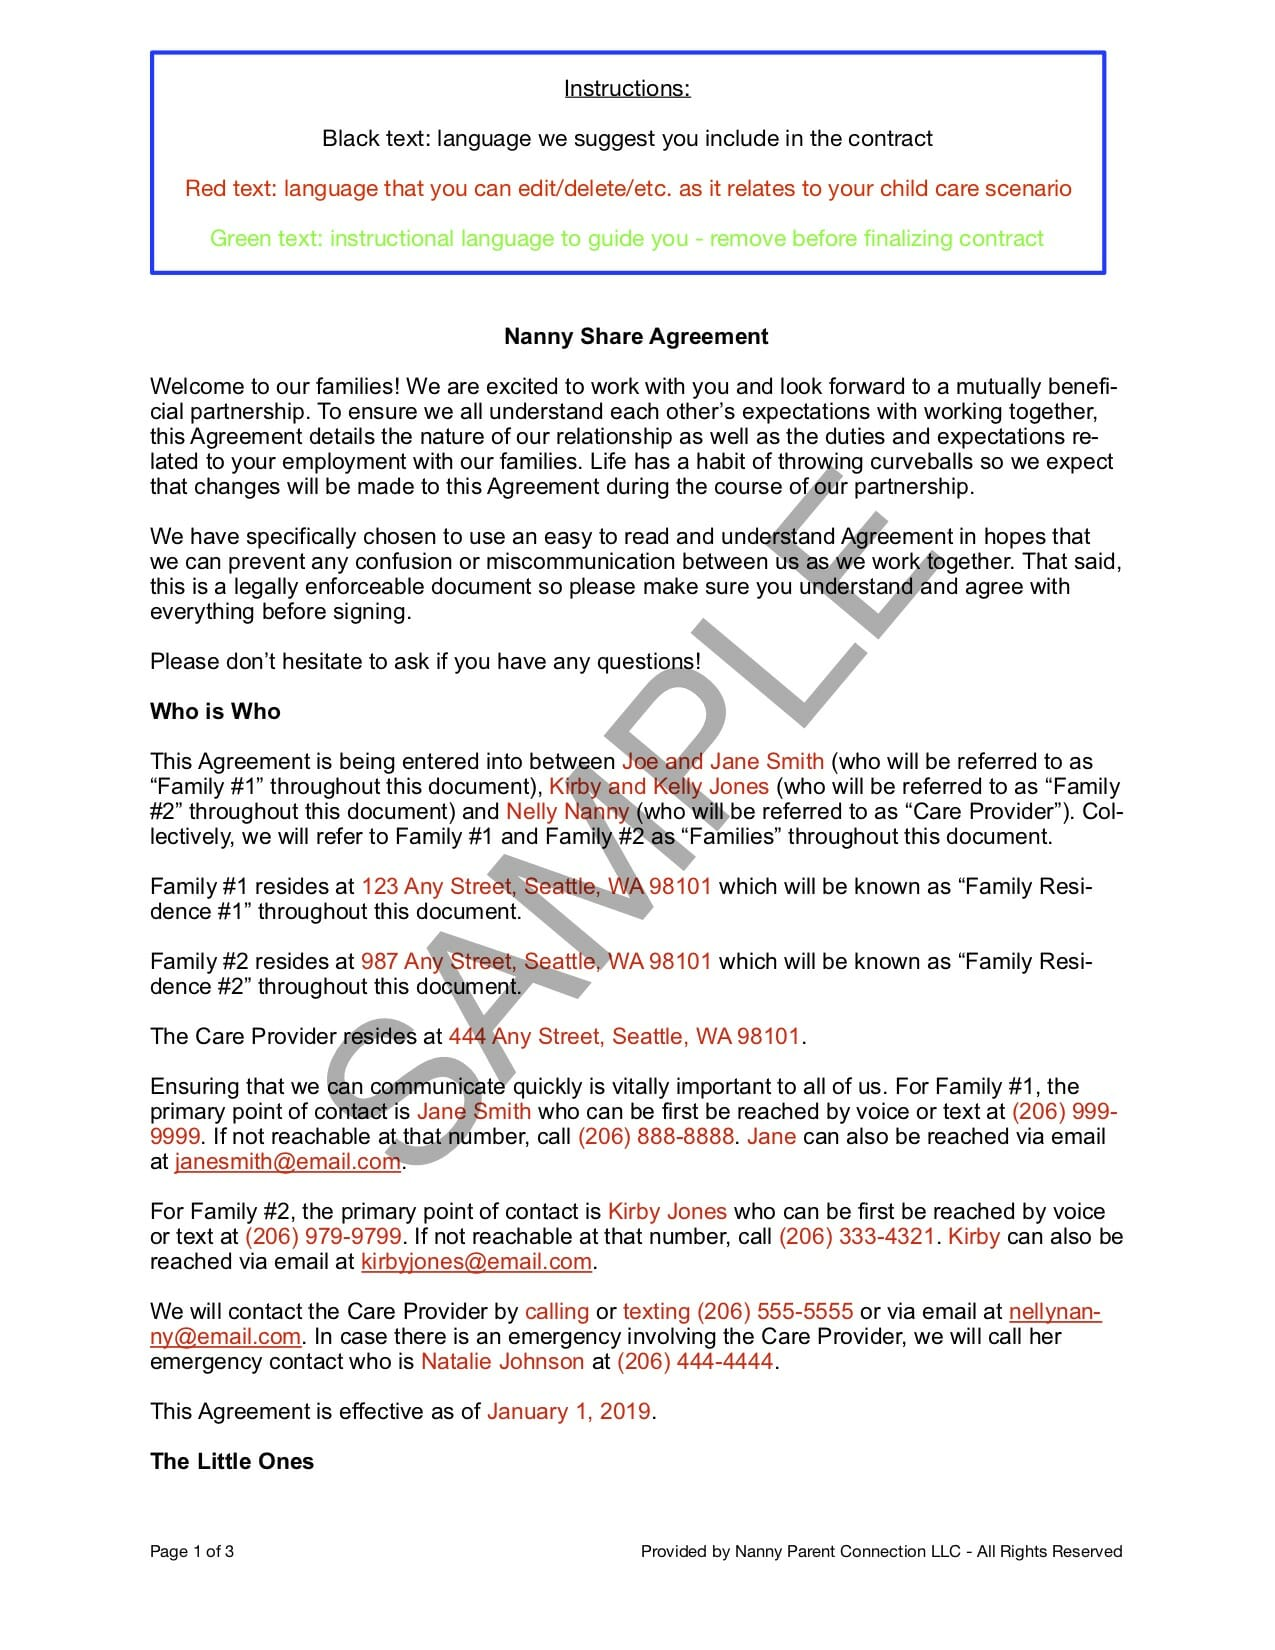 nanny share contract